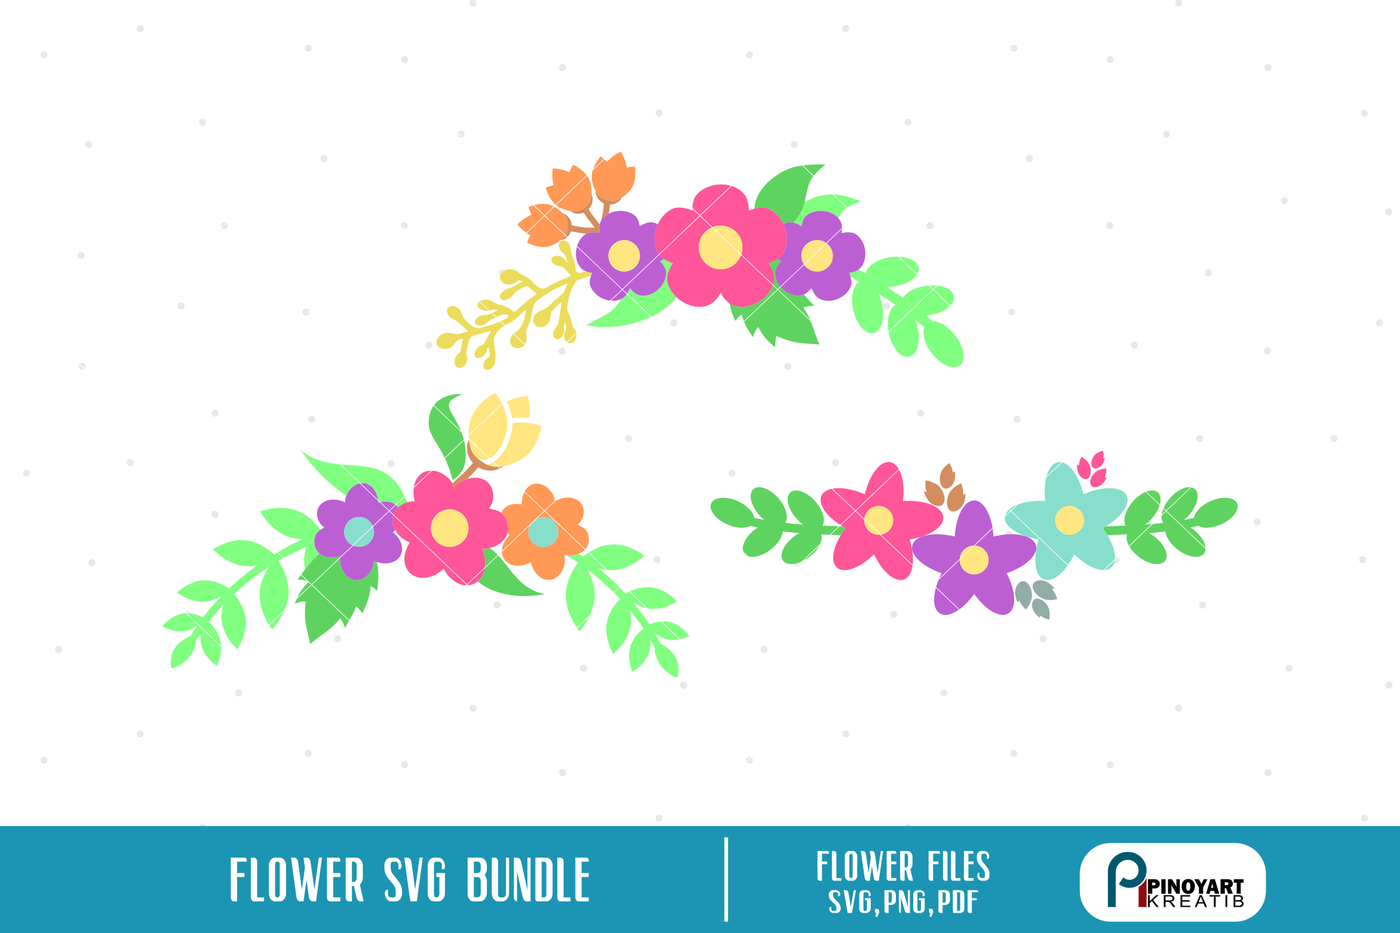 Flower Svg Flower Svg File Flower Dxf Flower Clip Art Floral Svg